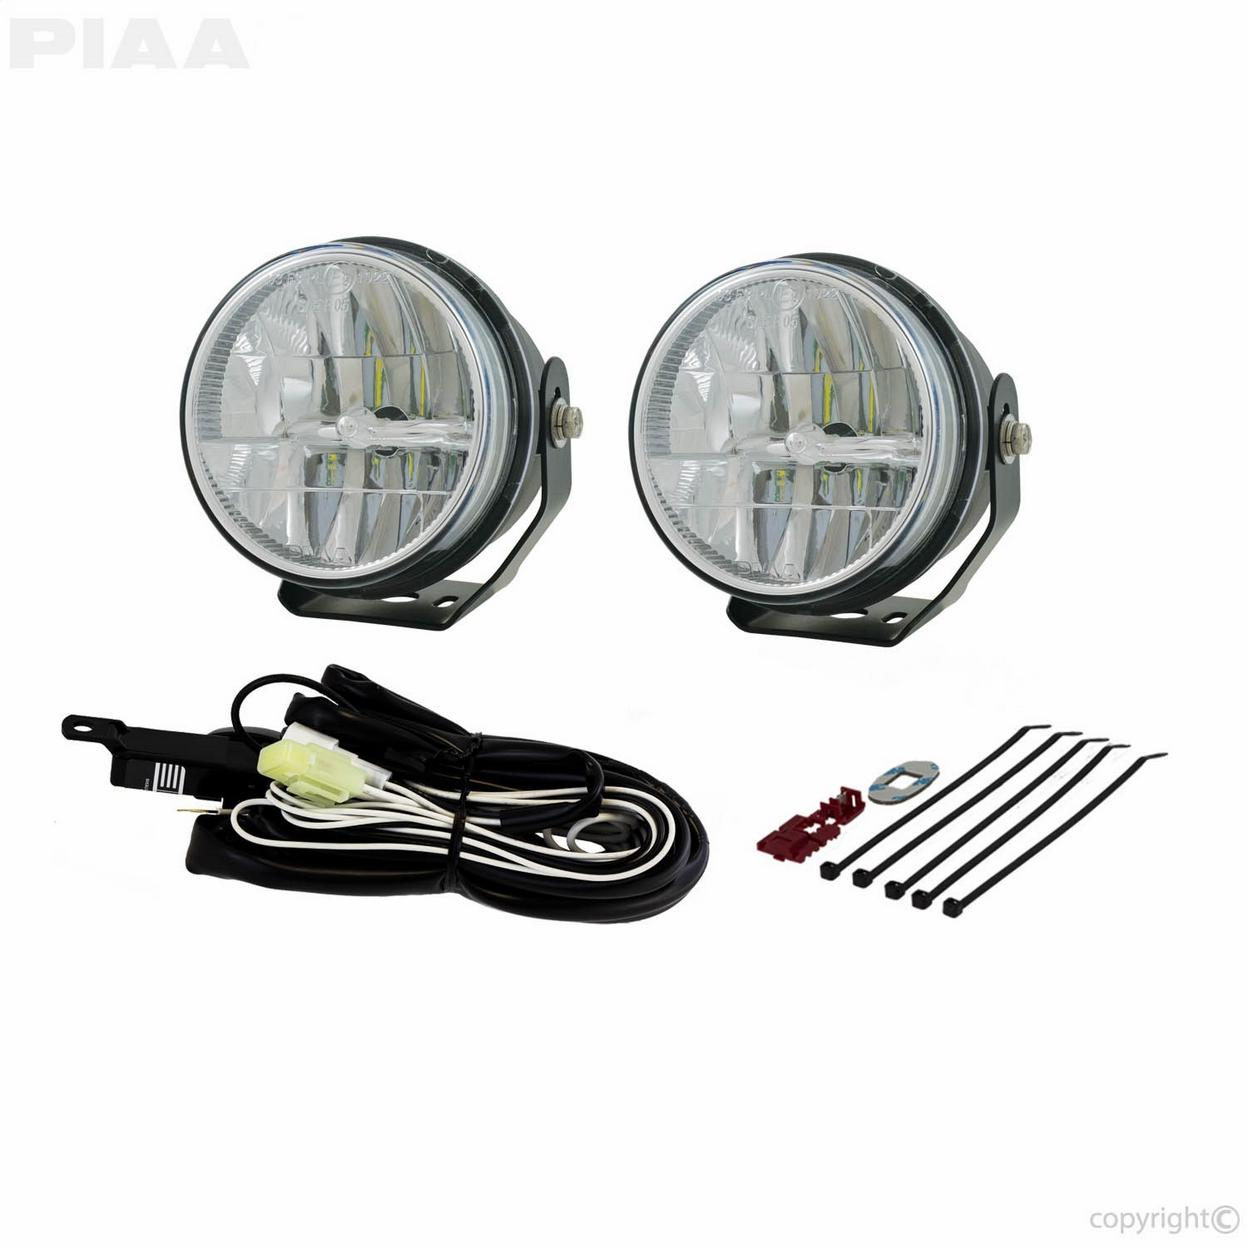 LP530 3.5IN. LED FOG LIGHT KIT; SAE COMPLIANT